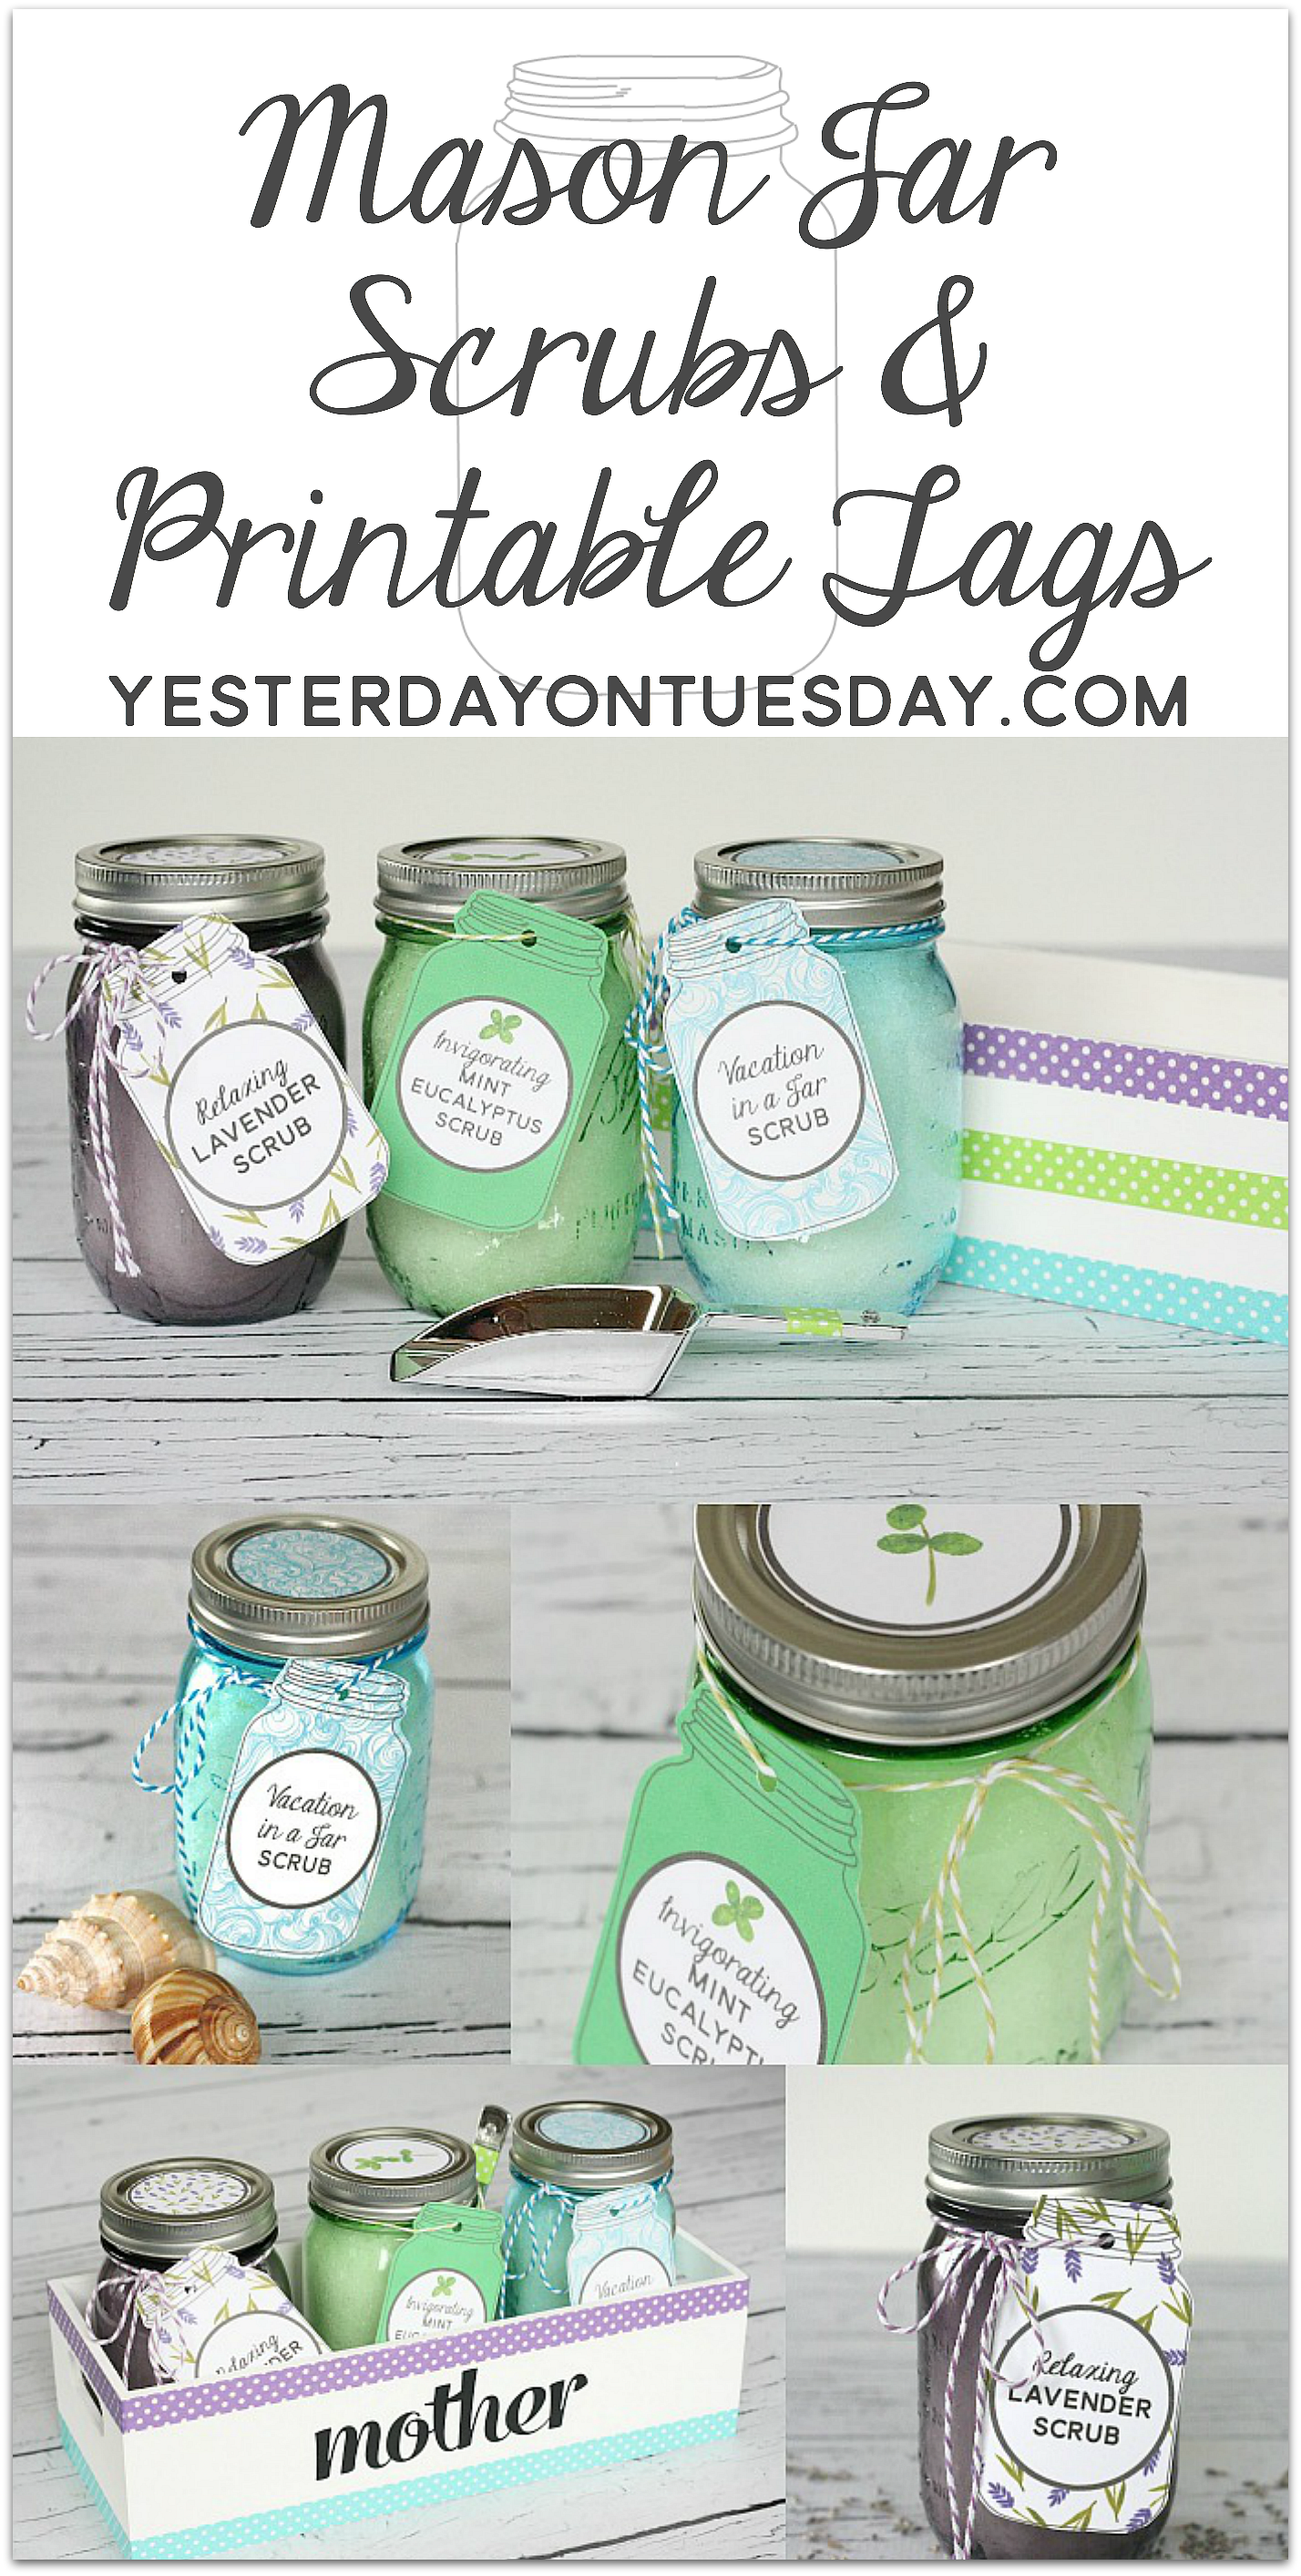 Lemon Rosemary Scrub And Printable Tags Yesterday On Tuesday